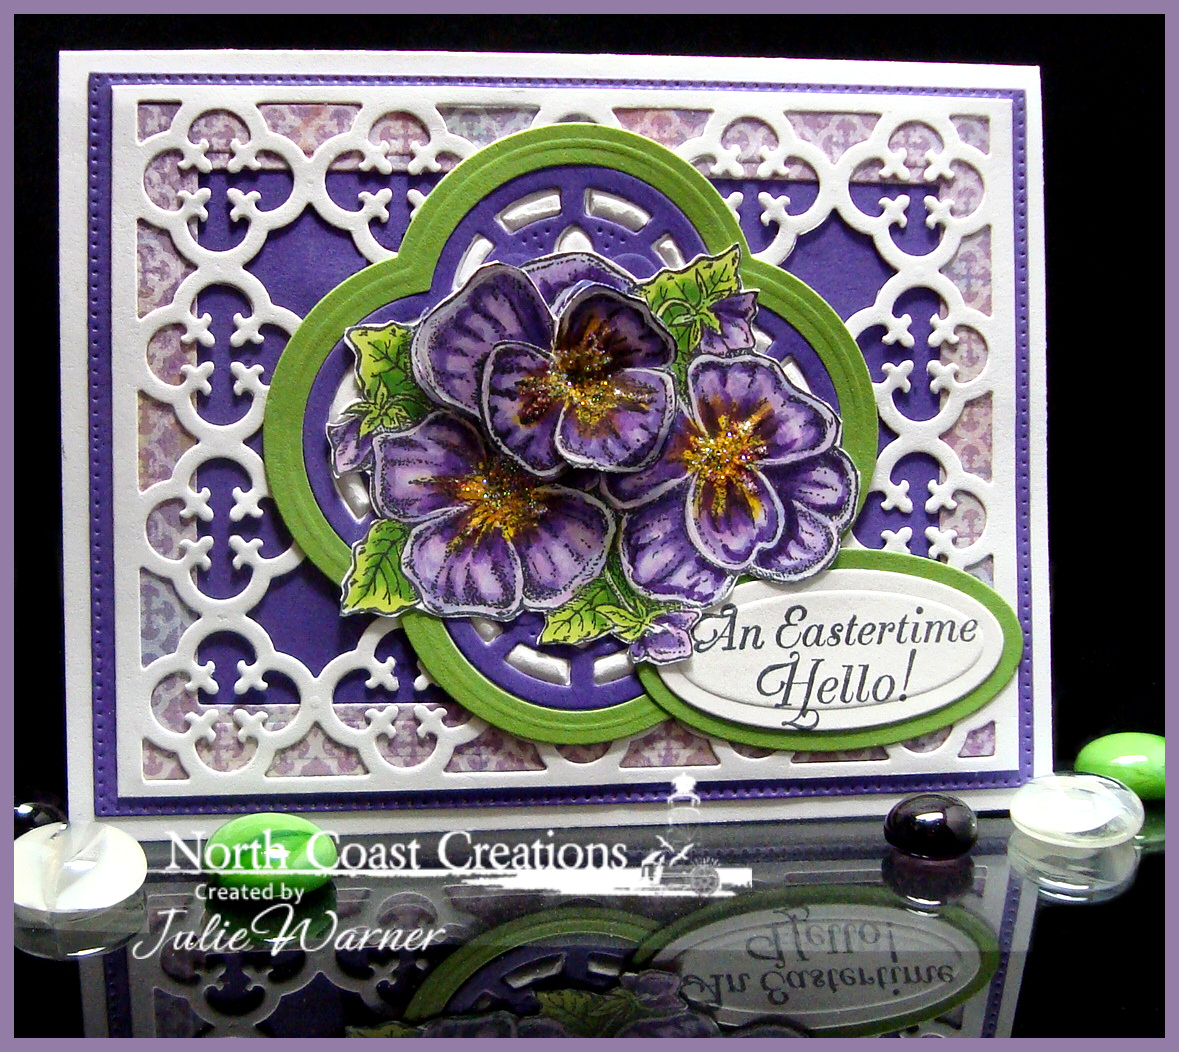 Stamps - North Coast Creations Pansies, ODBD Custom Flourished Star Pattern Die, ODBD Custom Quatrefoil Pattern Die, ODBD Custom Quatrefoil Design Dies, ODBD Christian Faith Paper Collection